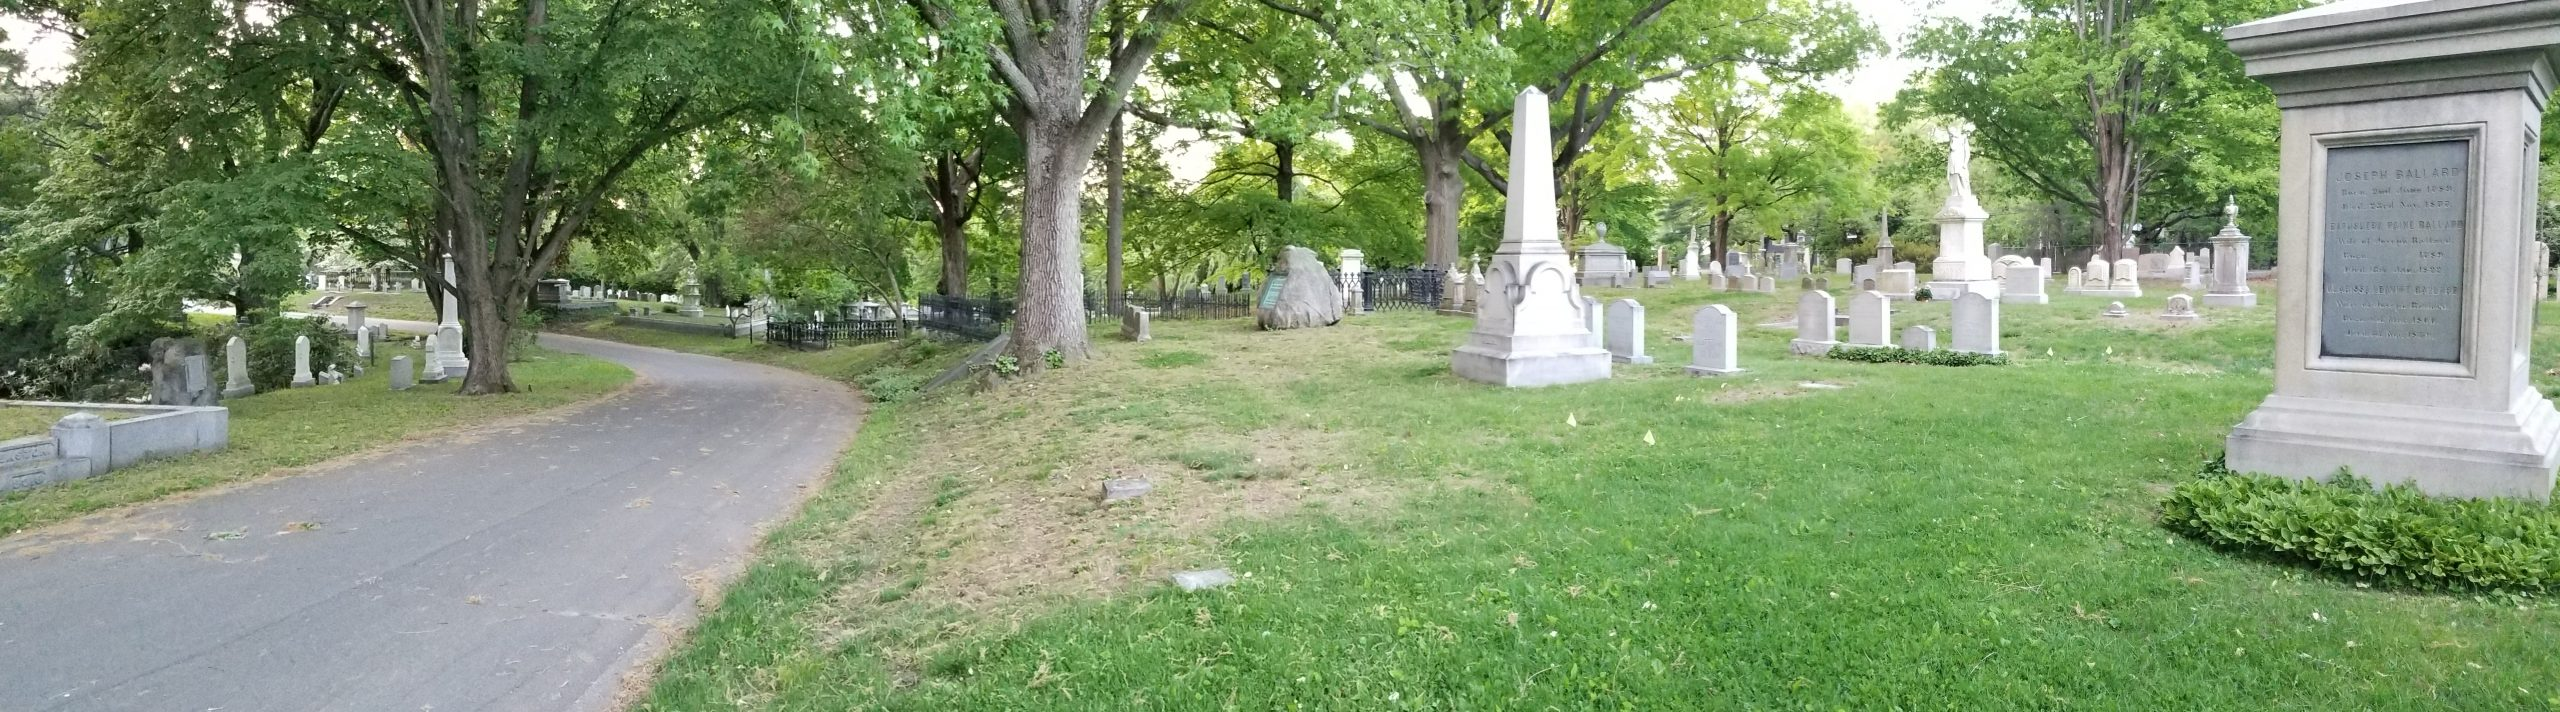 Historic landscape with historic monuments and mature canopy trees.